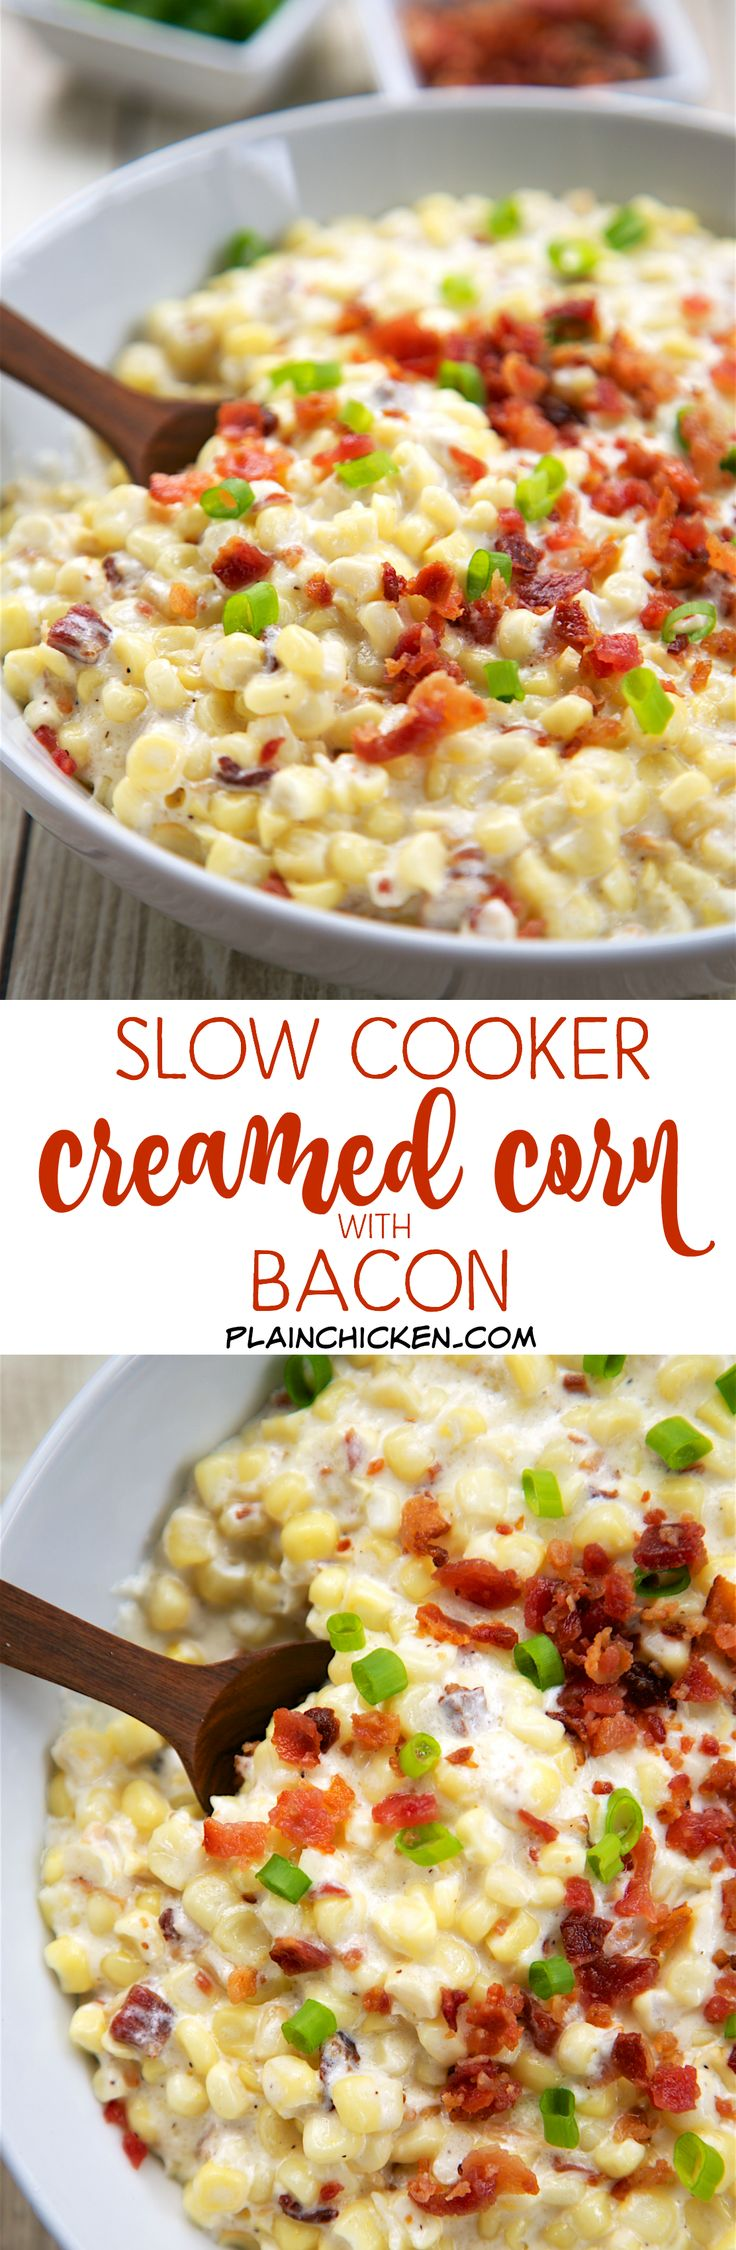 Slow Cooker Creamed Corn with Bacon - Corn, cream cheese, heavy cream, milk, bacon and green onions. YUM! It is super creamy with a hint of smokiness from the bacon. This recipe makes a lot and would be great for a potluck. This is seriously THE BEST corn recipe! I could have made a meal out of this! SO good!